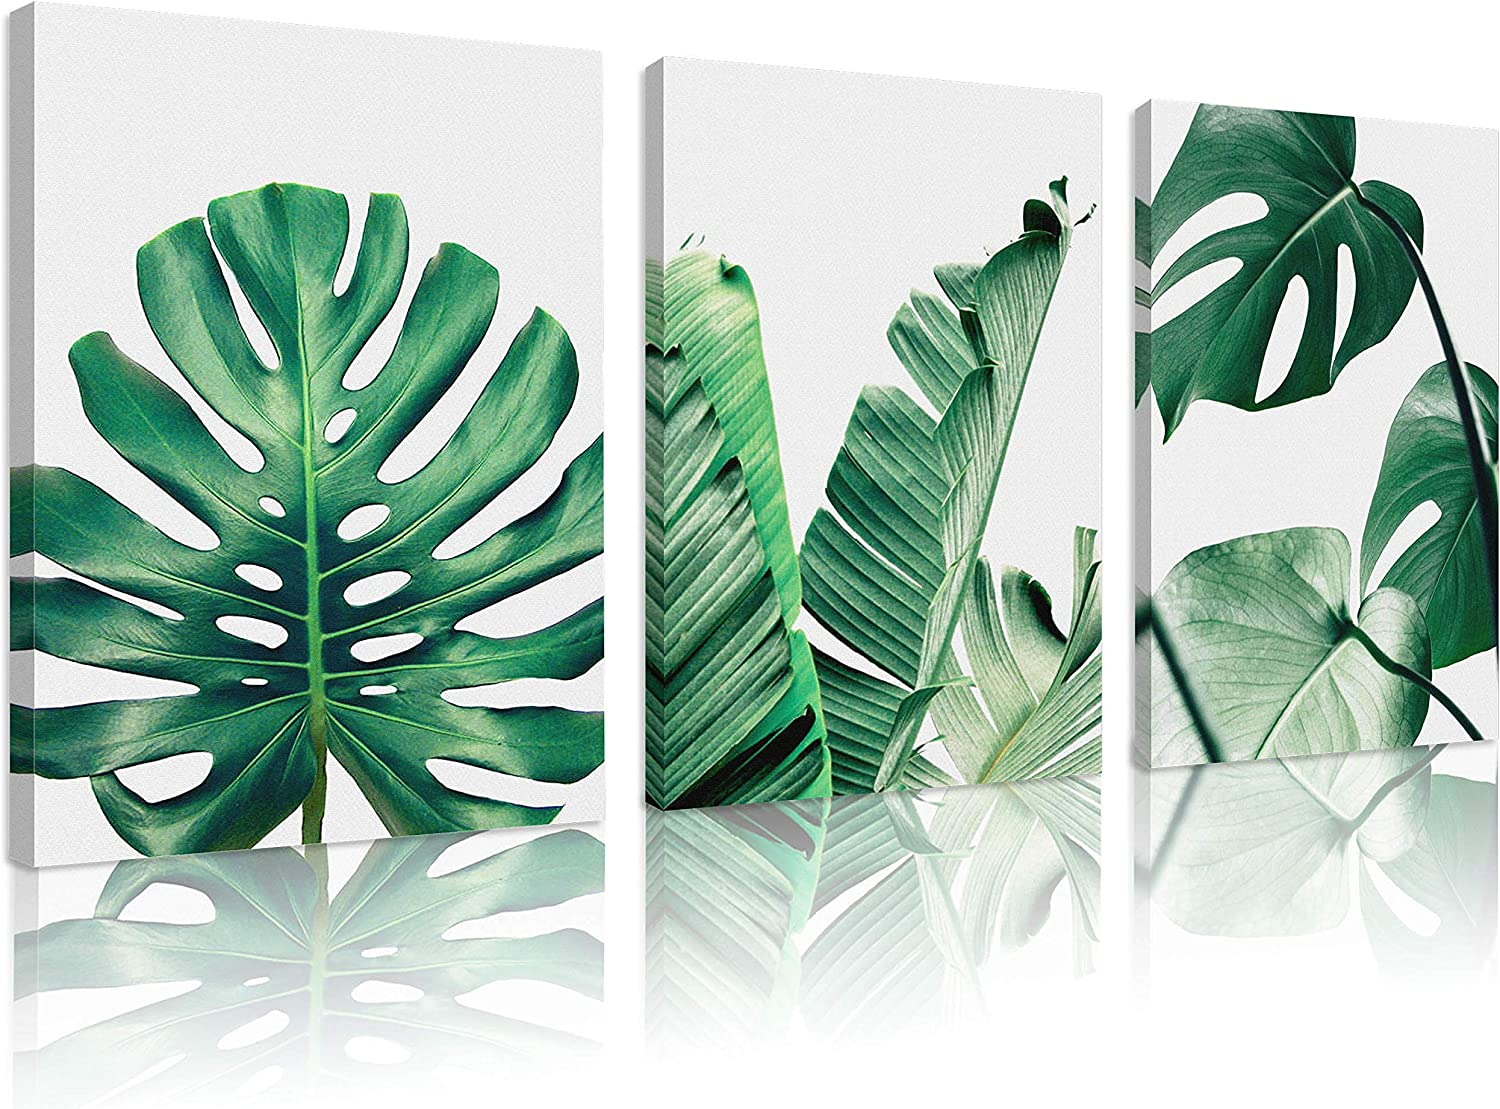 Natural art Simple Green Leaves Canvas Art Tropical Plants Artwork  Minimalist Watercolor Painting Wall Decor for Bathroom Living Room Bedroom  Kitchen ...